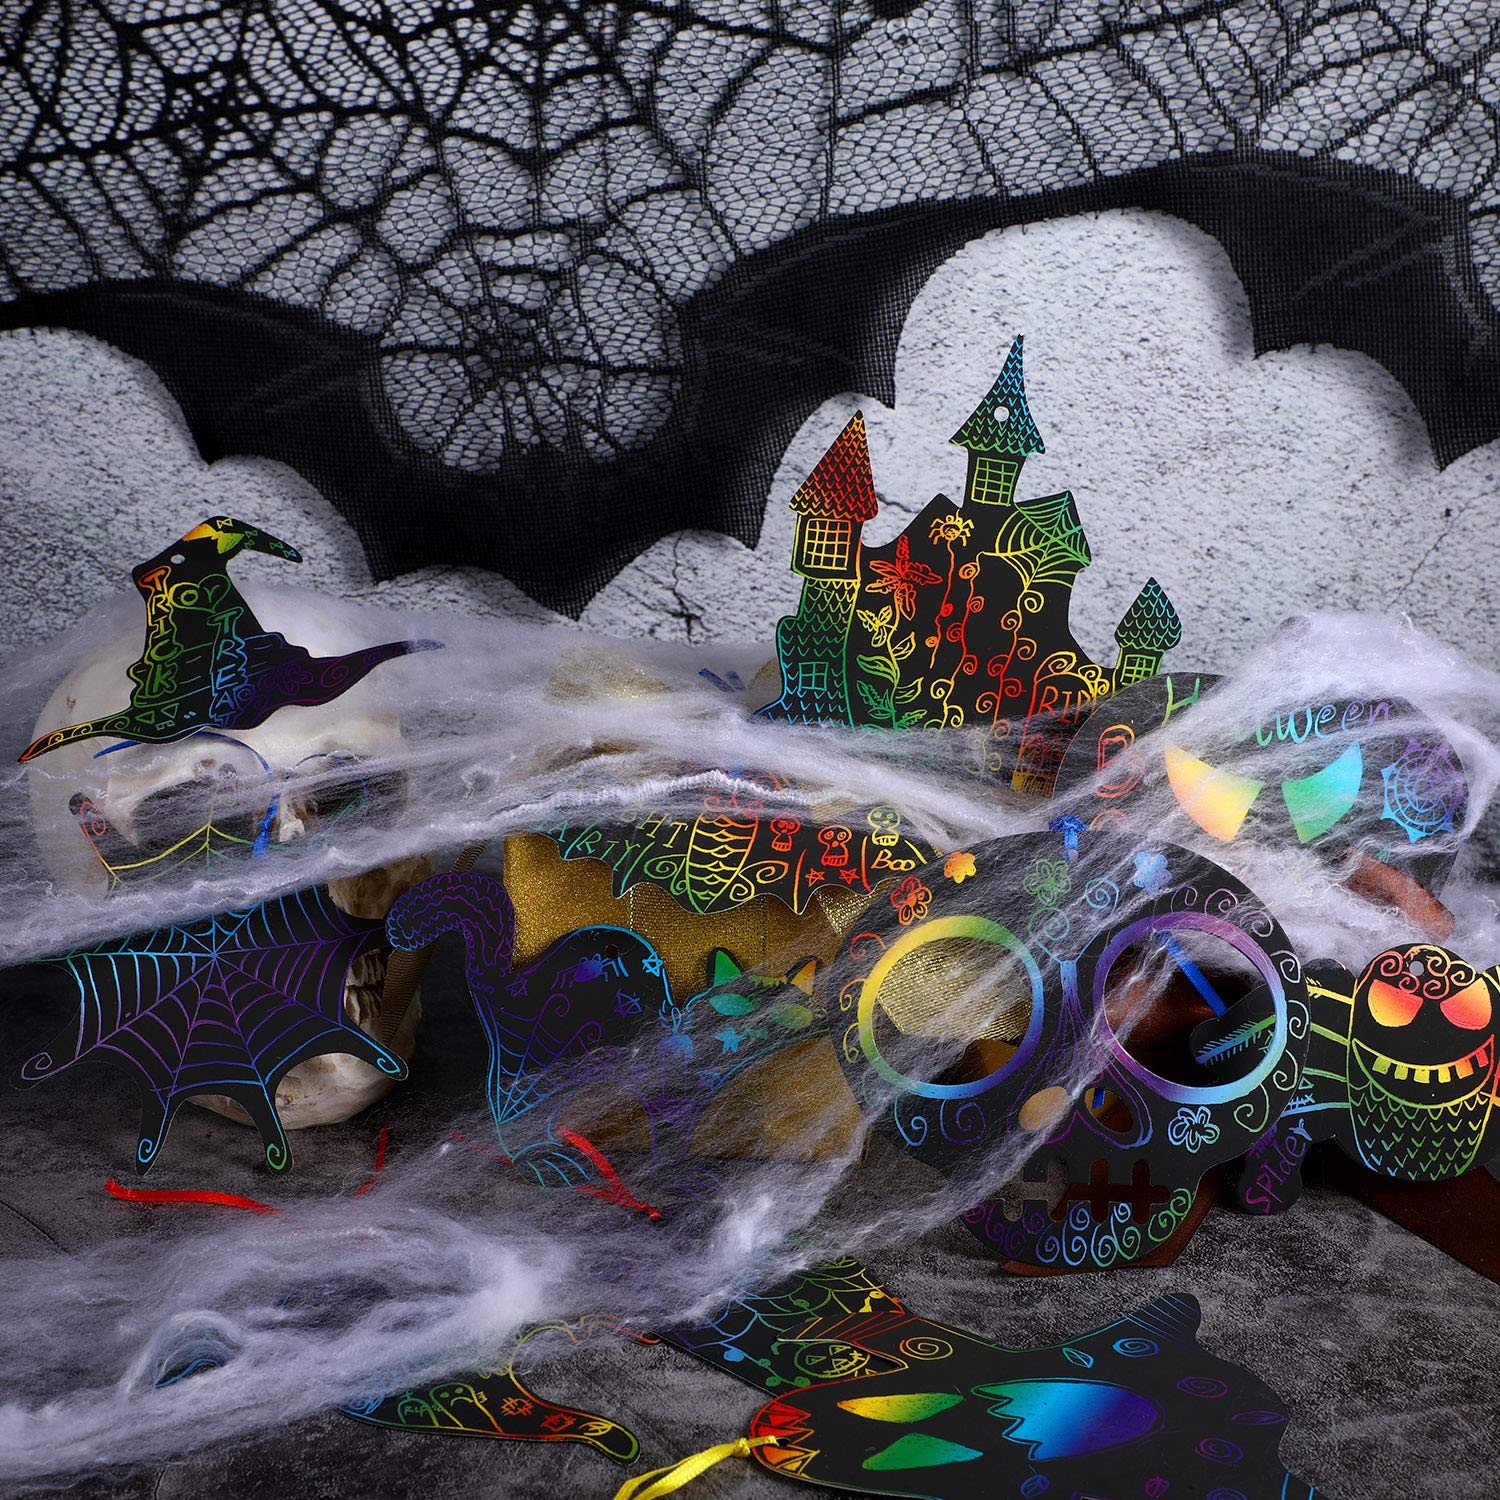 72 Pieces Halloween Scratch Paper Rainbow Scratch Art Scratch Off Paper with 12 Pieces Wooden Styluses and 72 Pieces Mixed Color Bands for Halloween Party Decorations